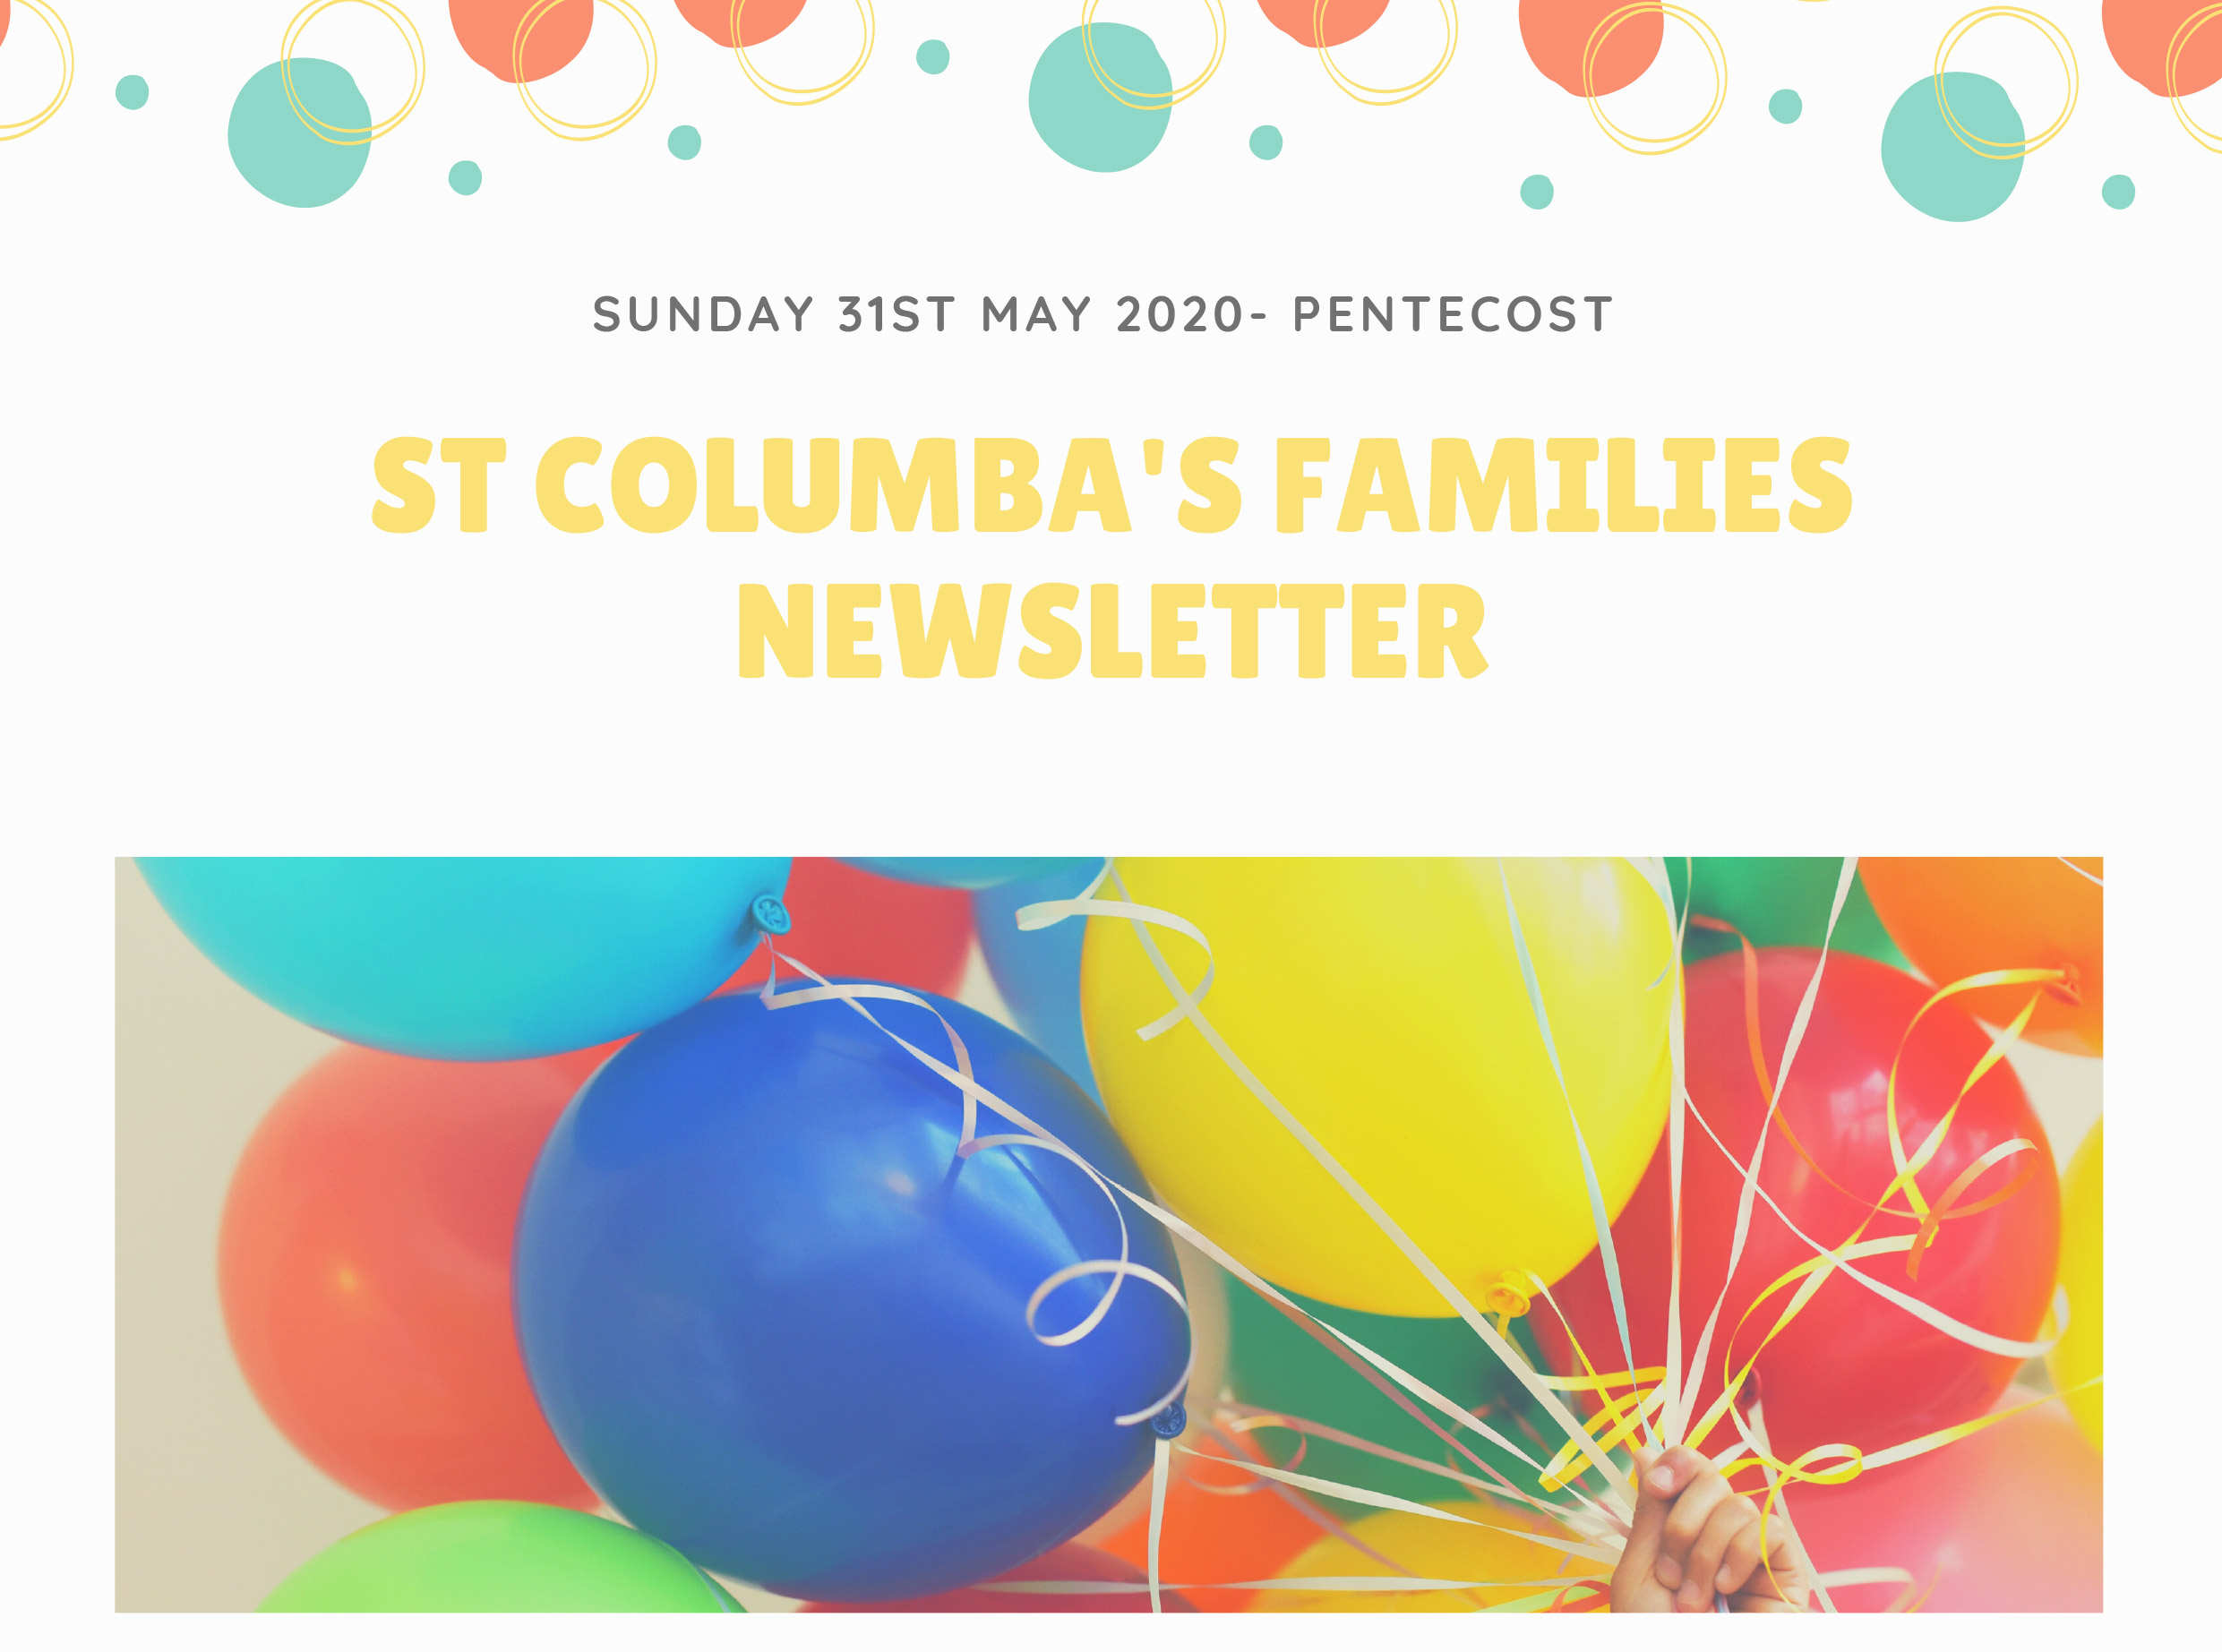 St Columbas Familes Newsletter 31st May 2020